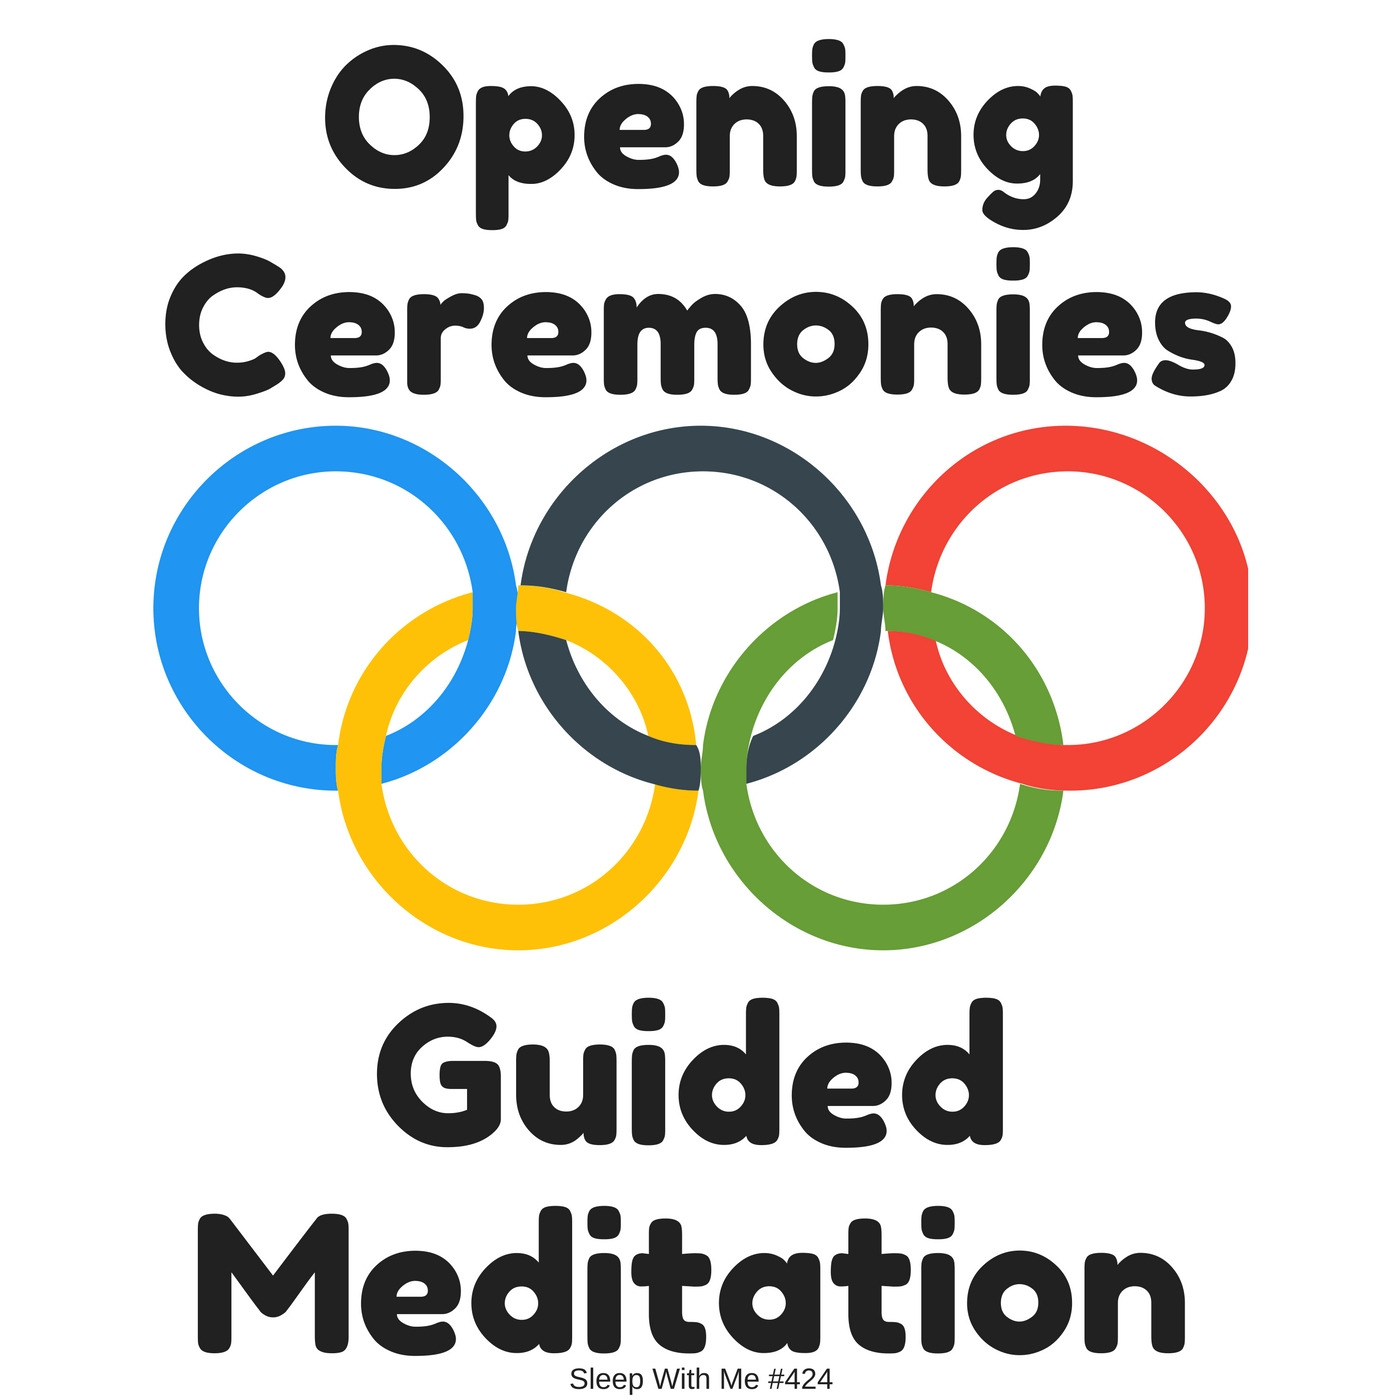 Olympic Opening Ceremonies Guided Mediation | Sleep With Me #424